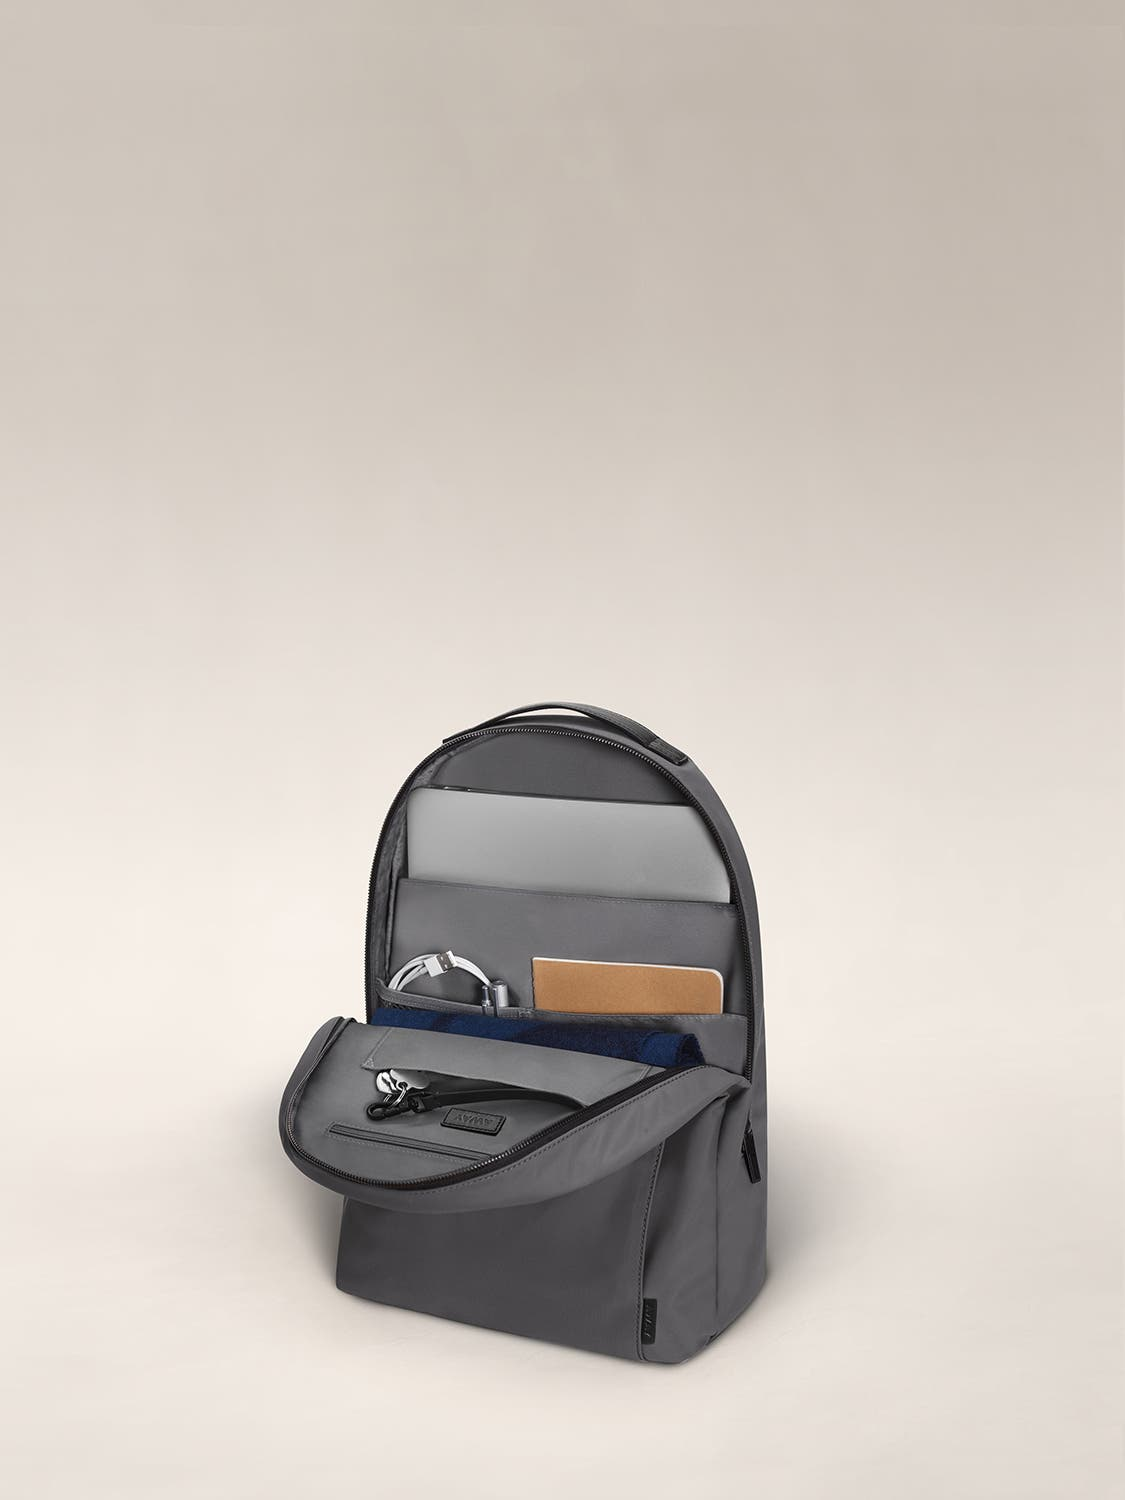 Gray daypack with organized pockets showing a laptop, notebooks and headphone.